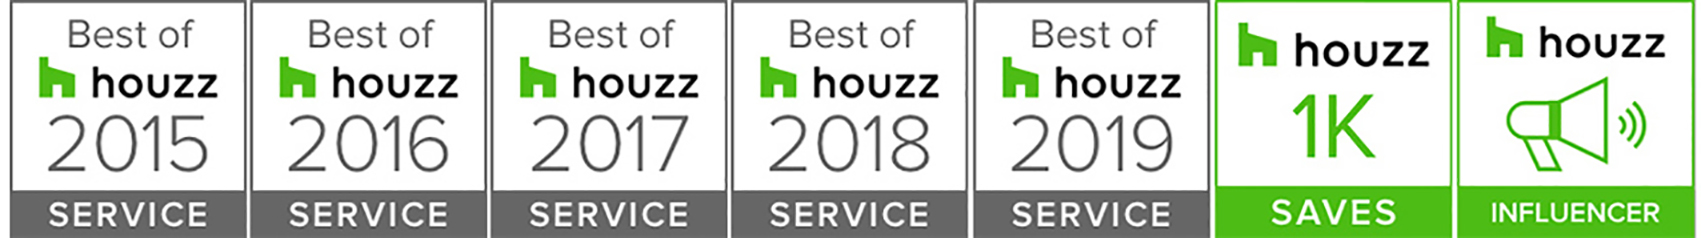 best-of-houzz-2015-16-17-18-19